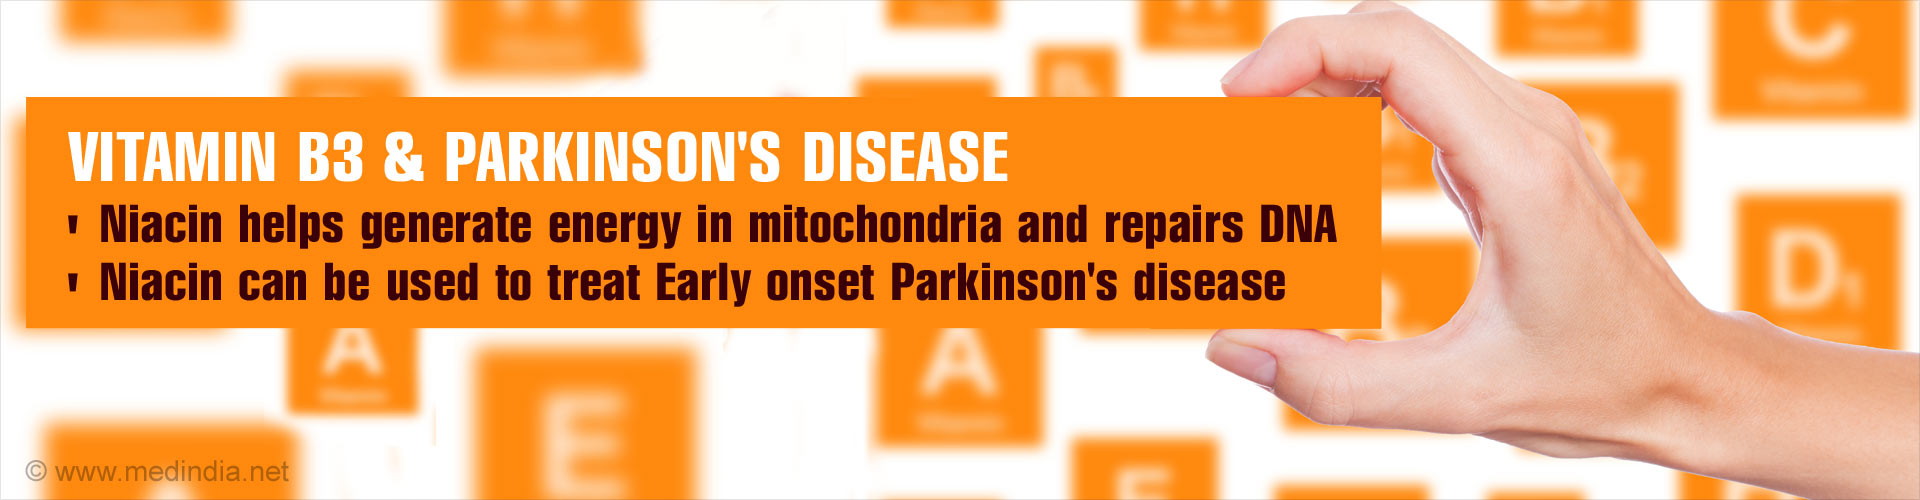 Vitamin B3 & Parkinson's Disease